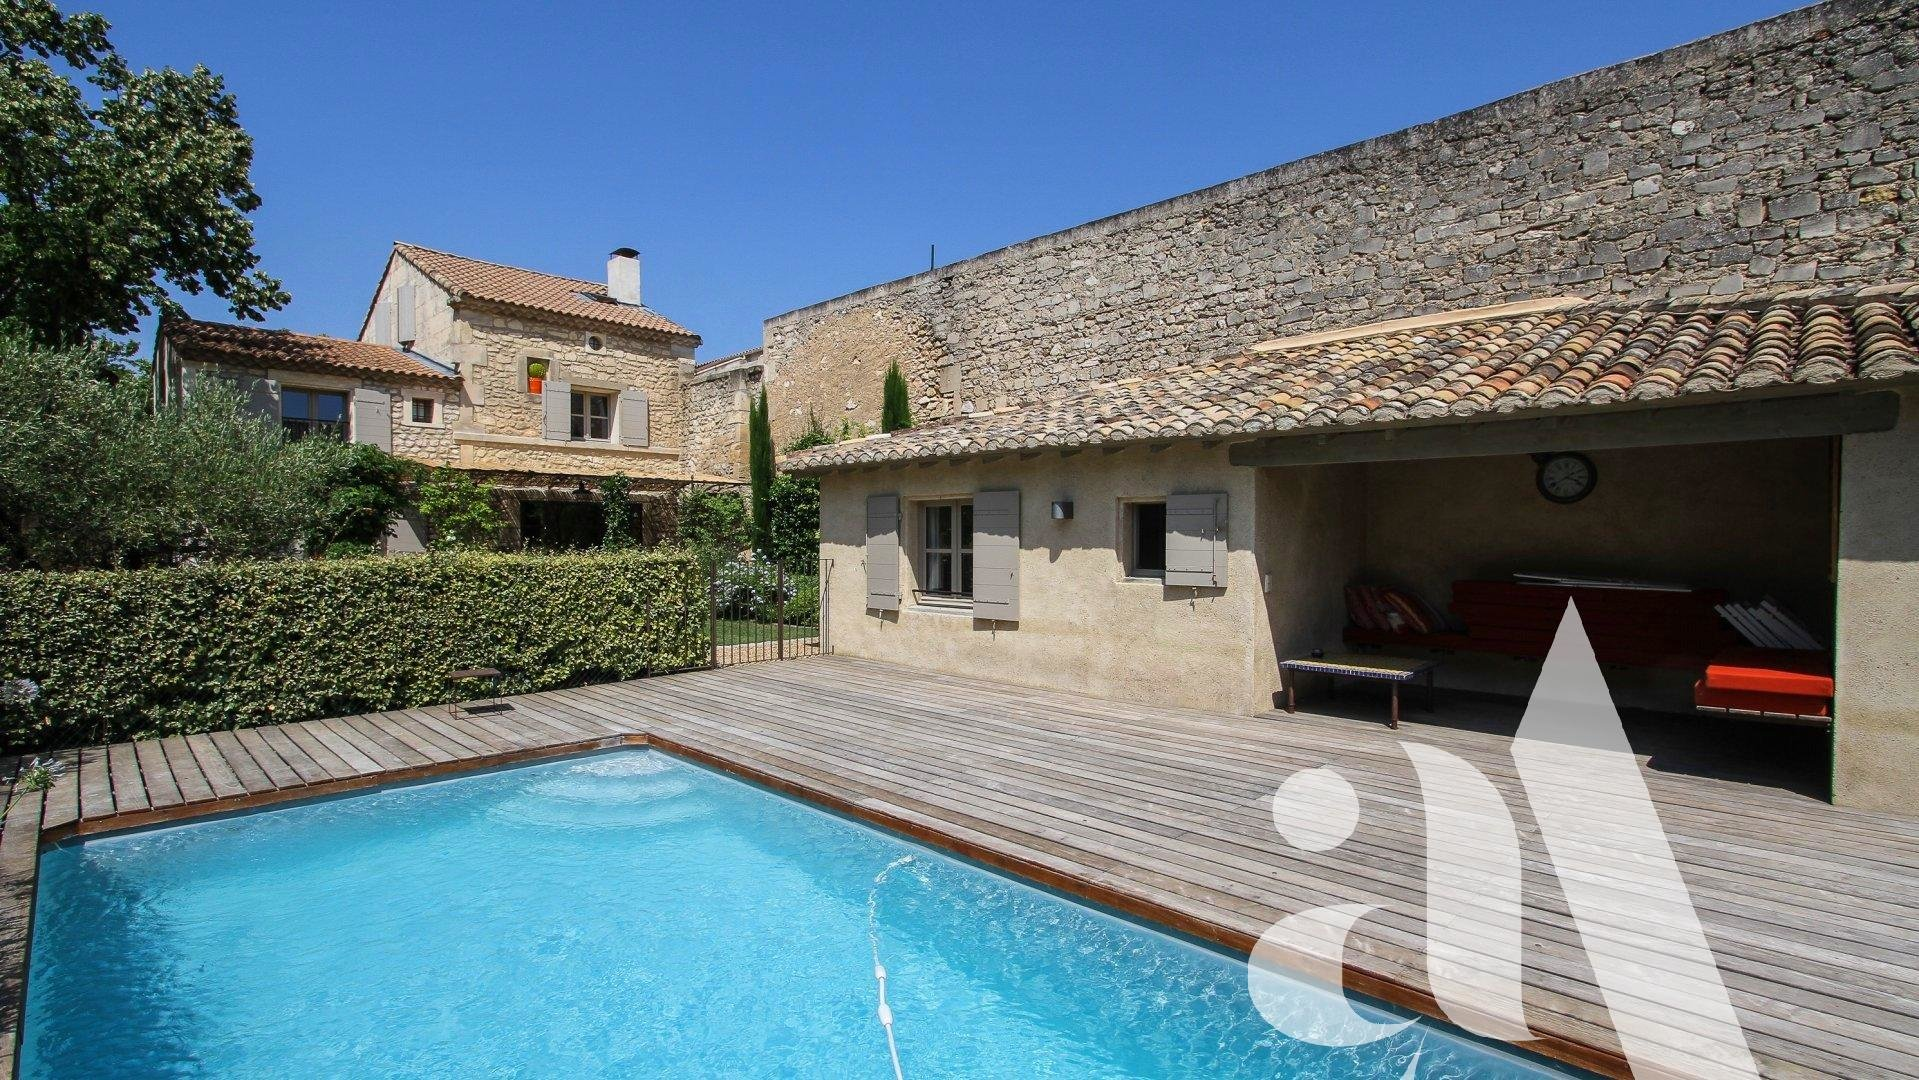 THE CACTUS MAZET - MAUSSANE - ALPILLES - 4 Rooms - 8 people